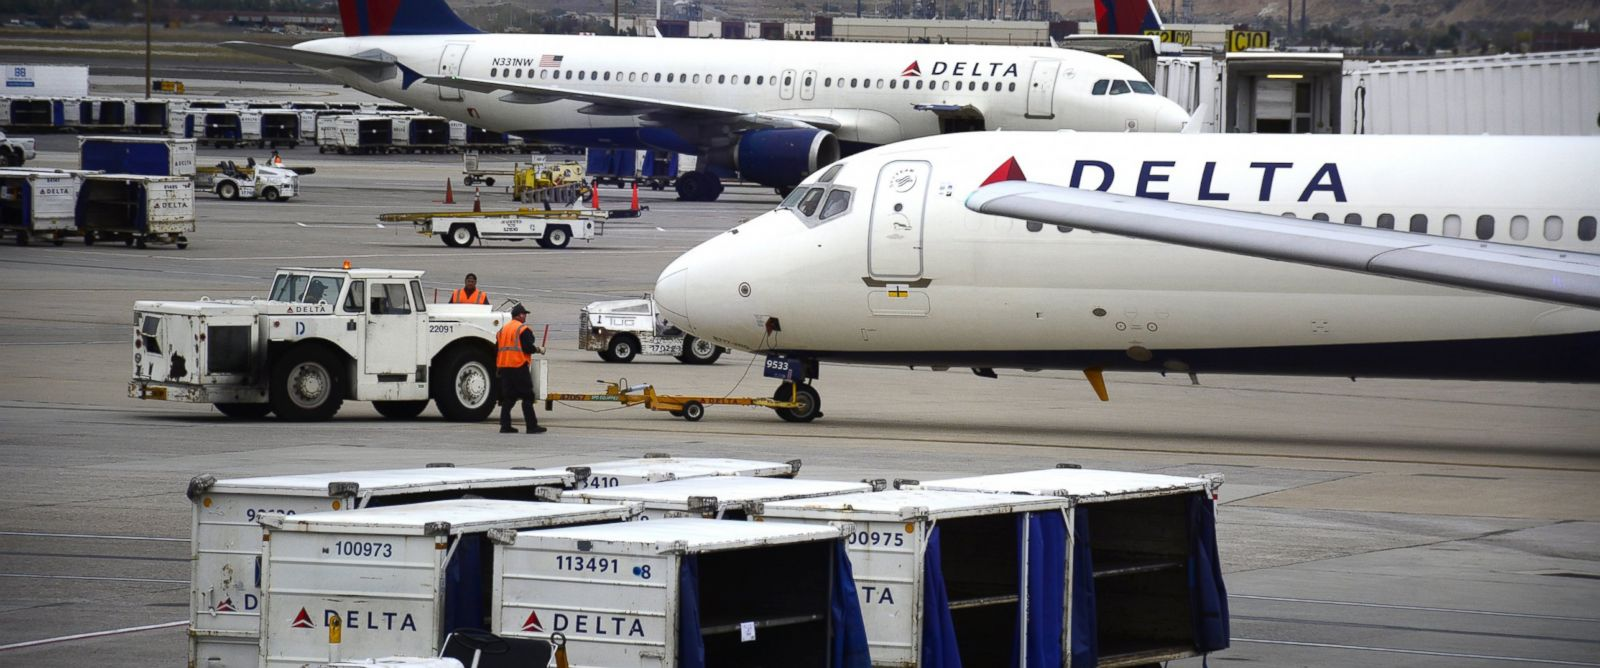 PHOTO: Delta Airlines passenger planes are pictured at Salt Lake City International Airport in Salt Lake City, Utah, Oct. 28, 2015.